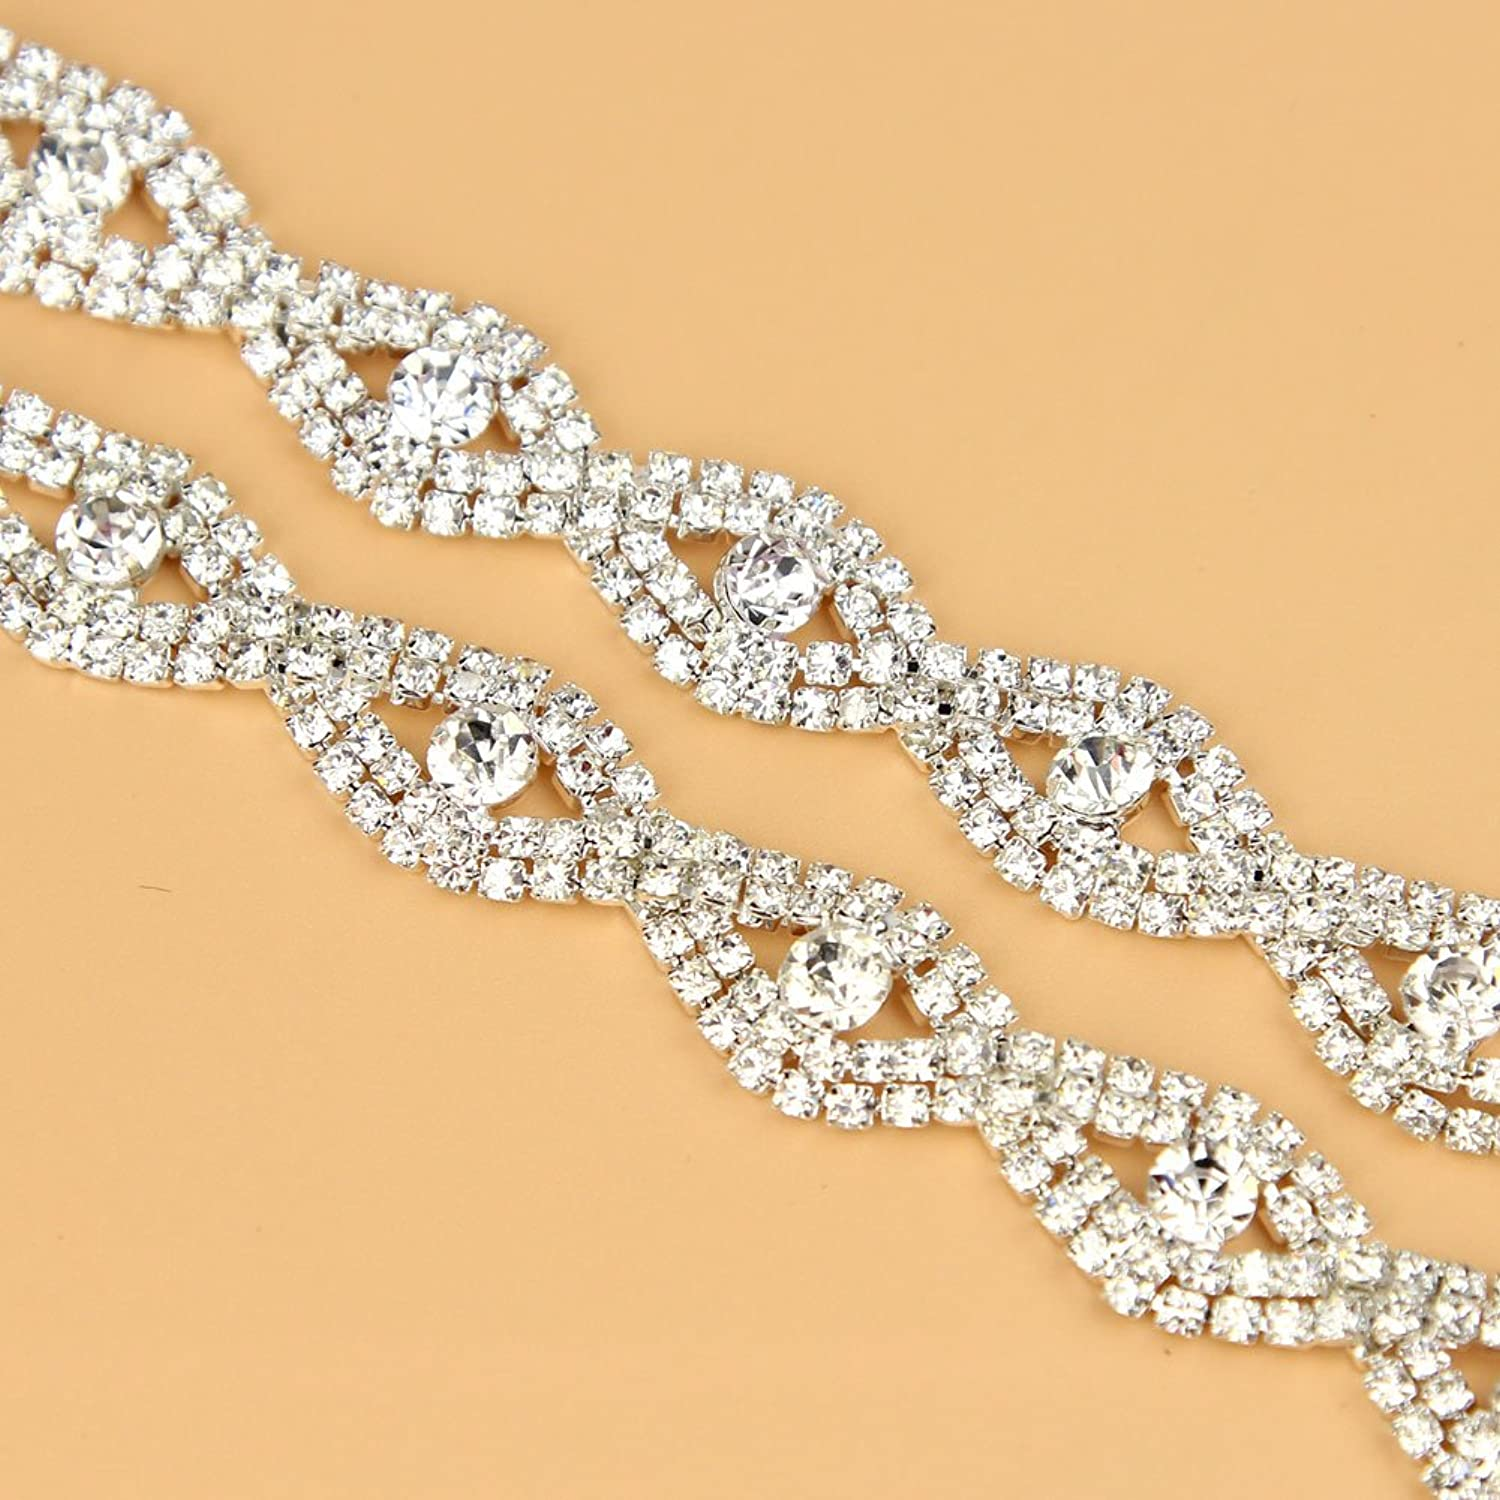 De.De. 1 Yard Elegant Crystal Clear Glass Rhinestone Applique Bridal Trim/Chain Silver